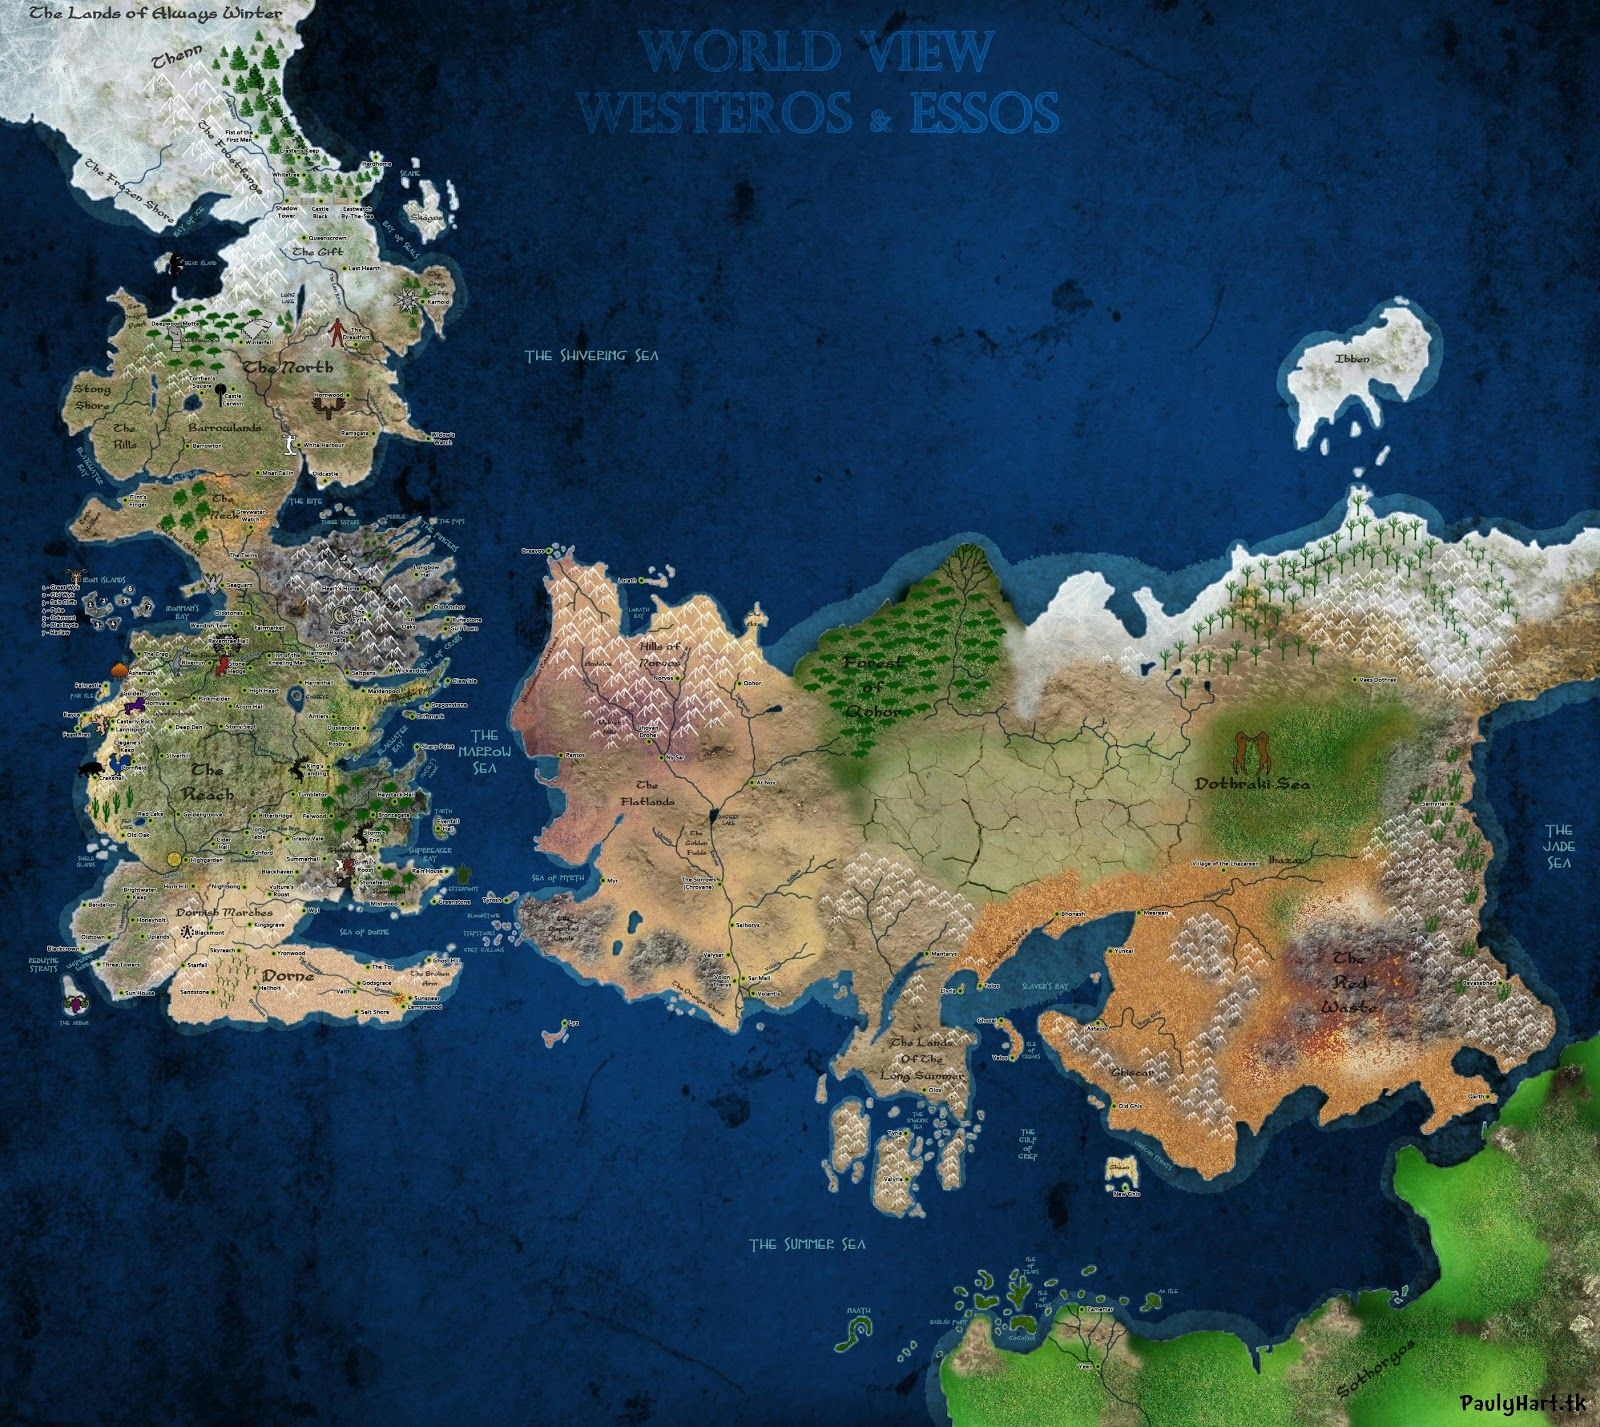 Game of thrones map hd wallpapers download free game of thrones map game of thrones world view westeros essos map fabric poster decor 62 gumiabroncs